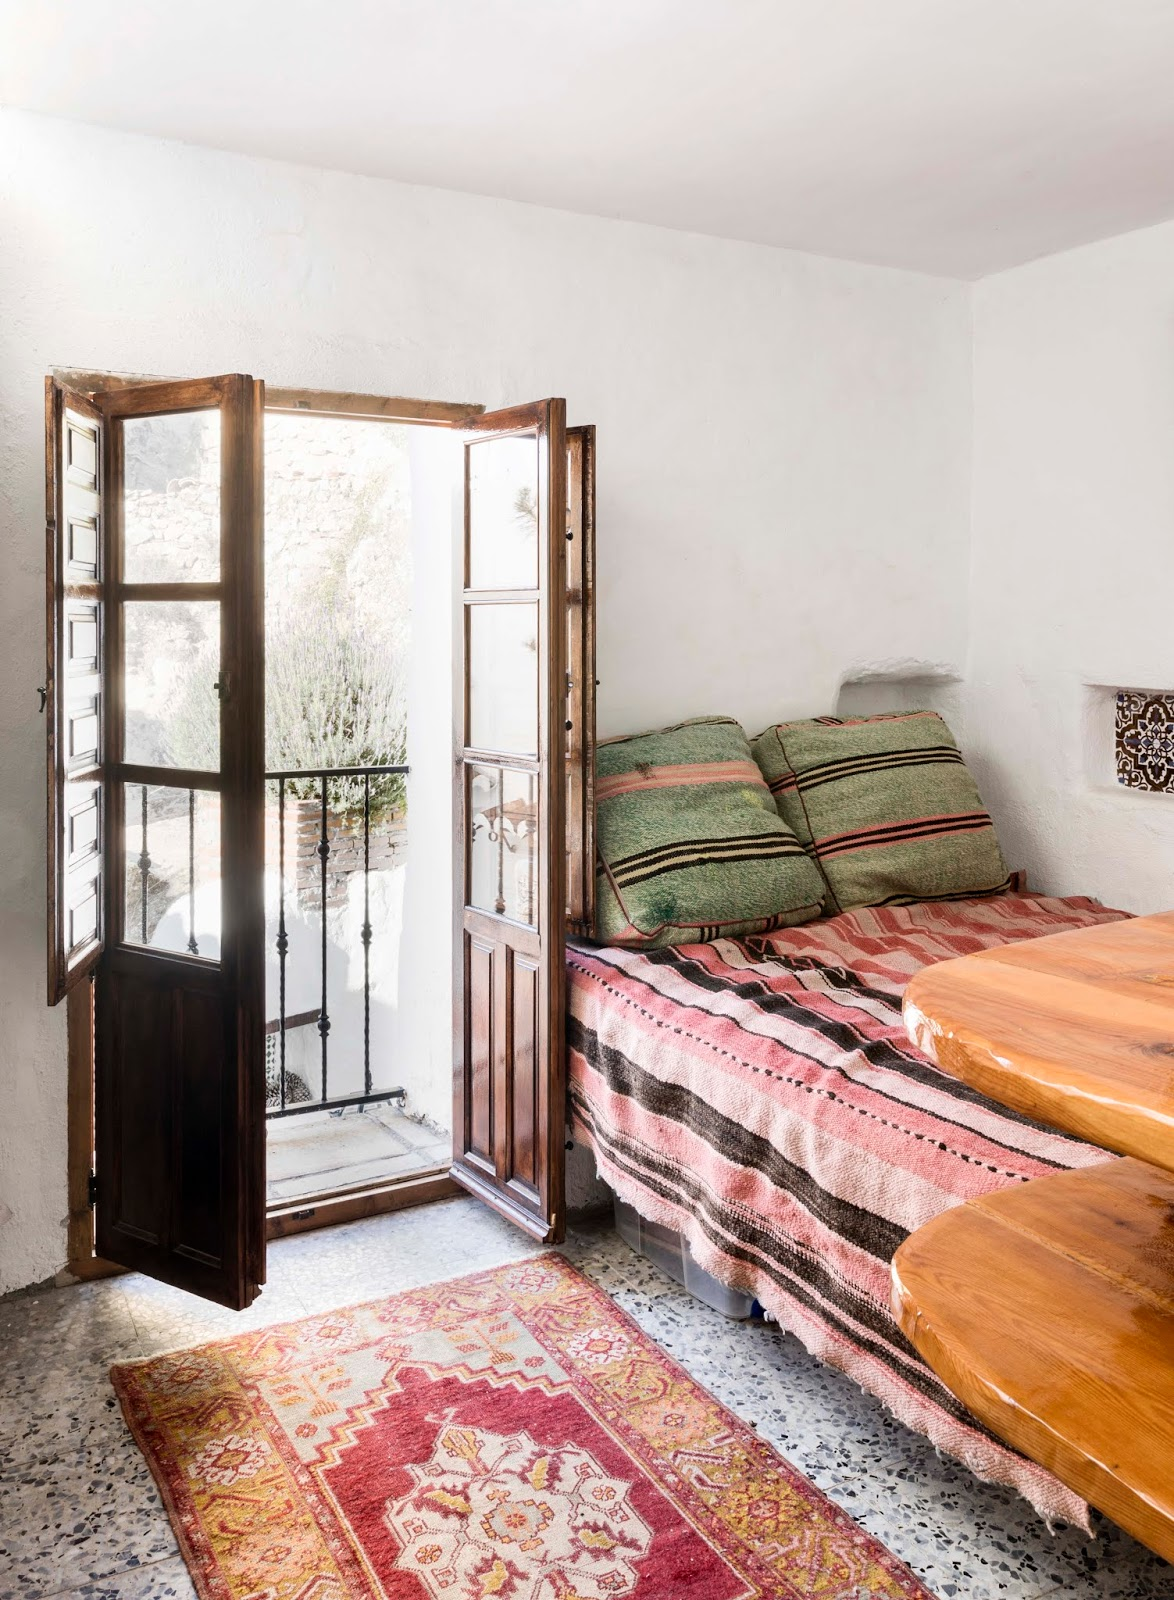 Canillas de Aceituno, Spain, holiday, rent, apartment, townhouse, rental, vacationhome, home, interior, spanish, style, interiorphotography, interior design, photographer, Frida Steiner, Visualaddict, visualaddictfrida, bedroom, bed, french balcony,pillows, colorful interior